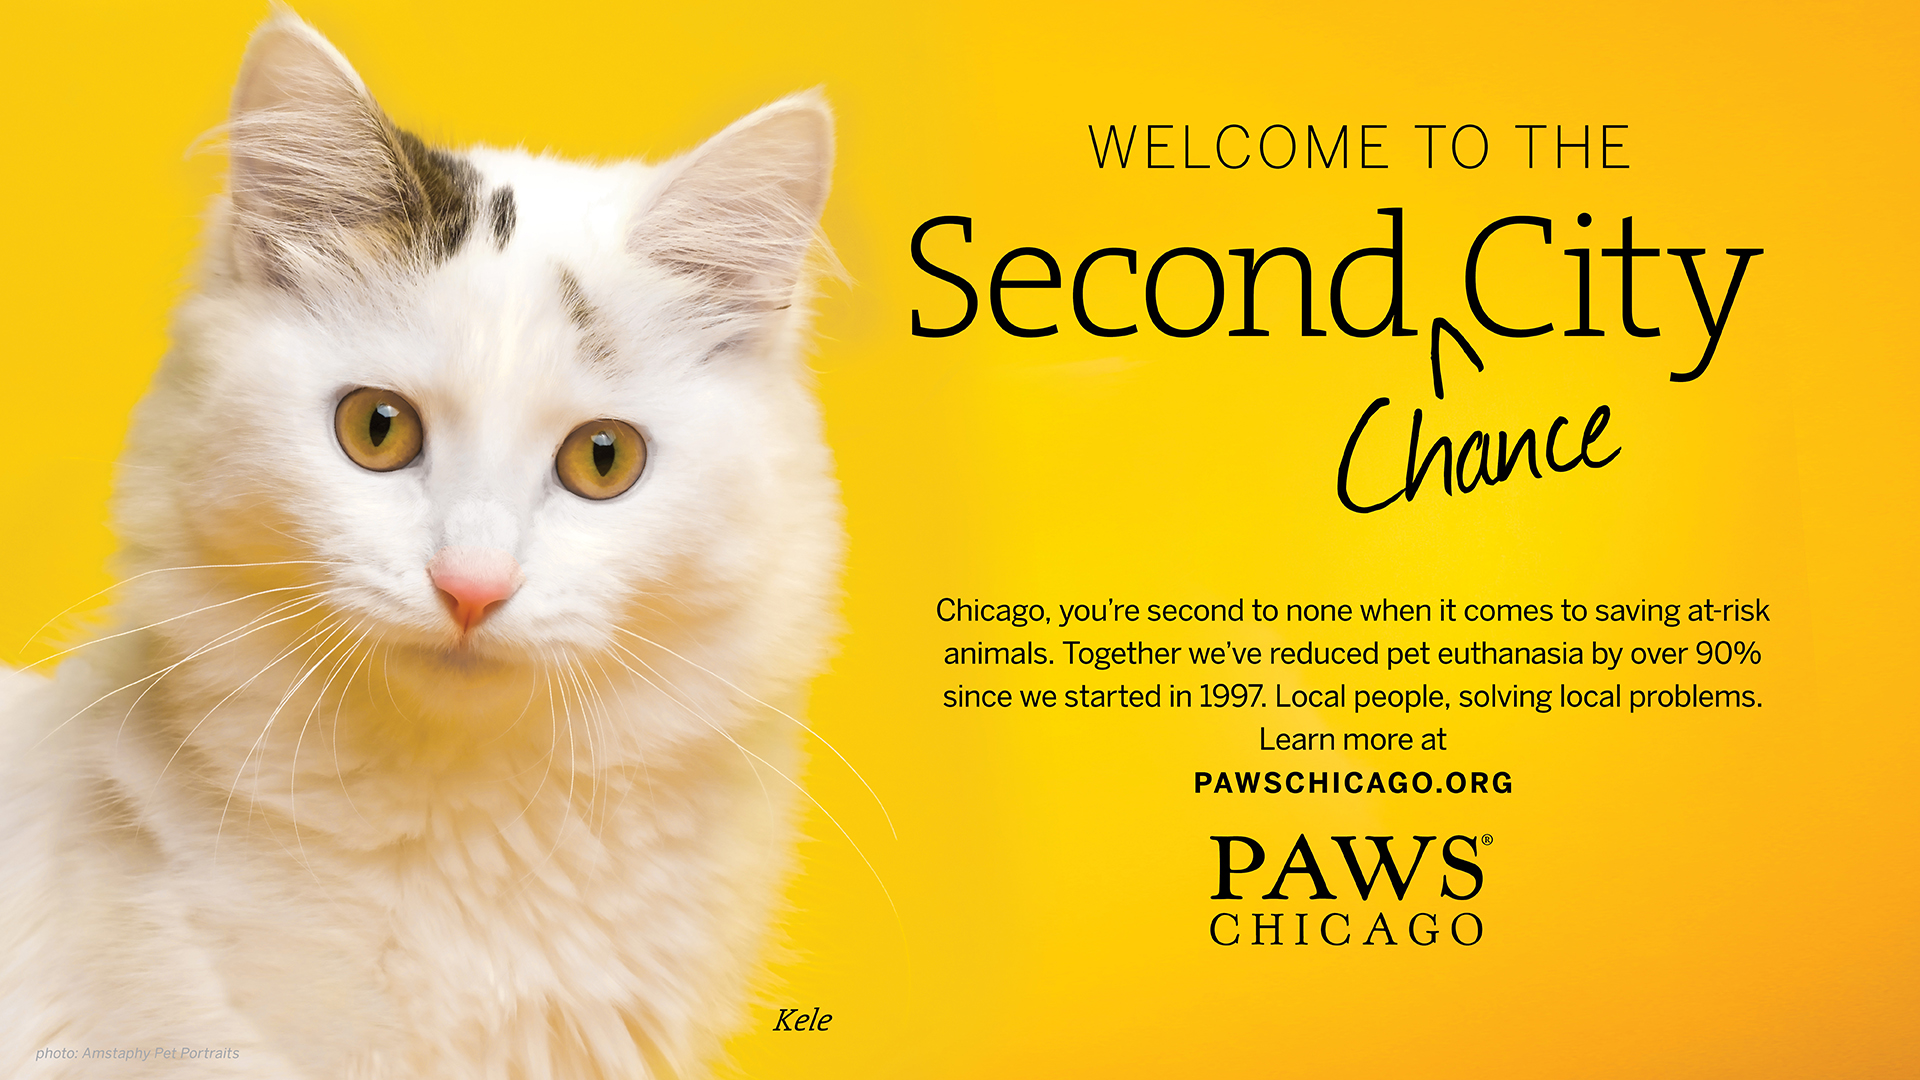 PAWS_Chicago_Cat_1.jpg